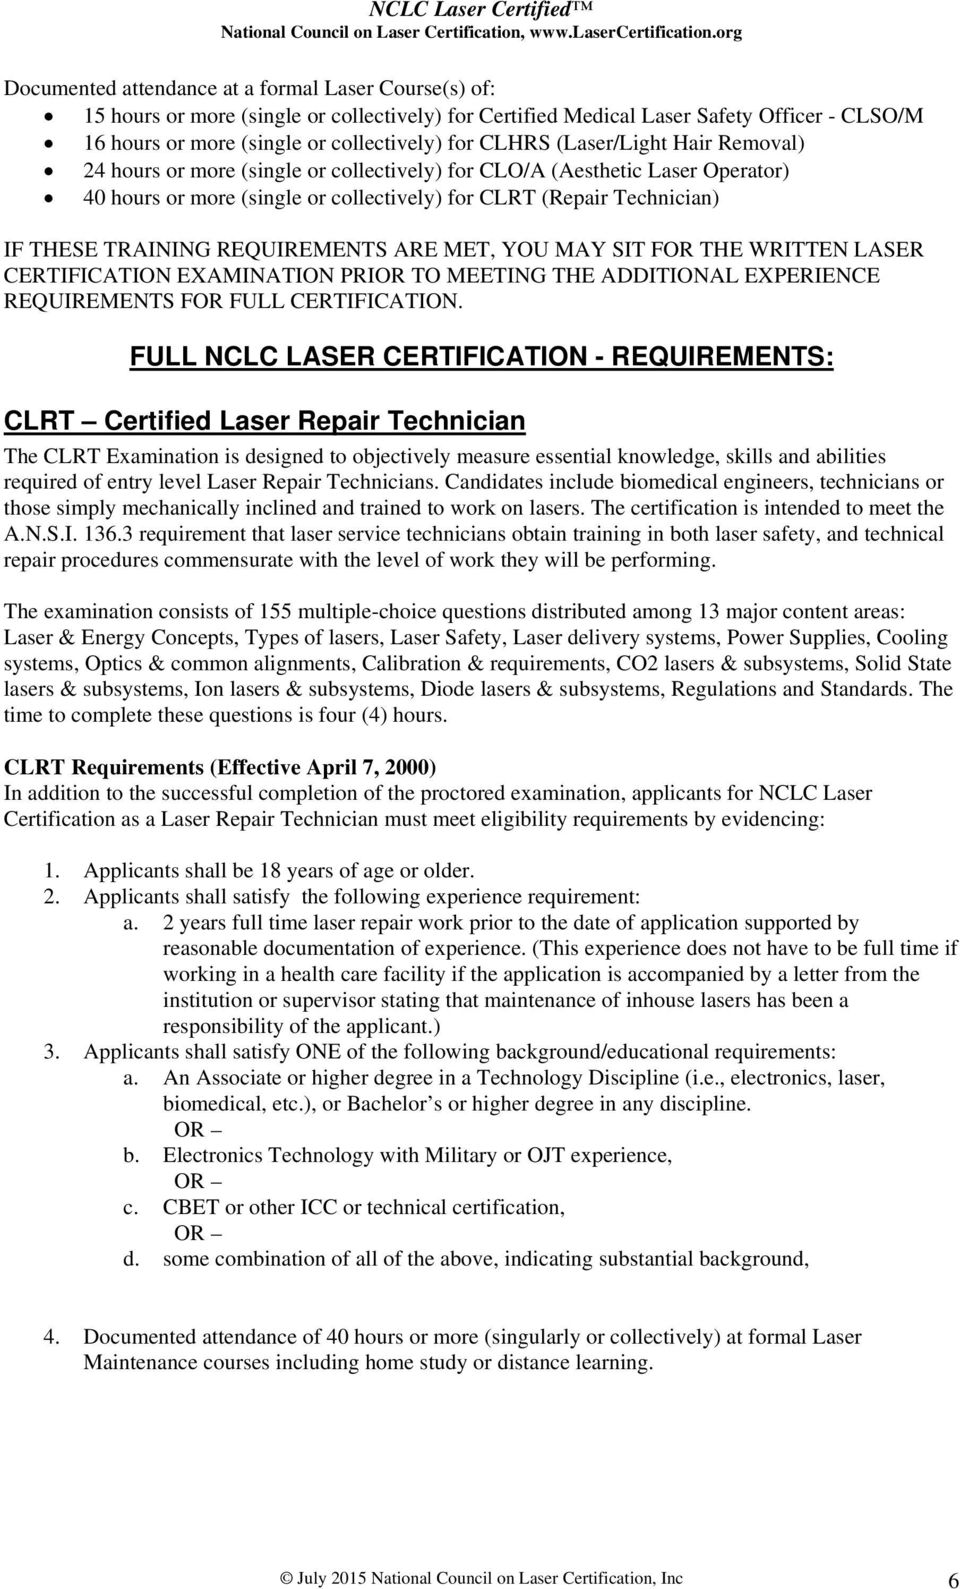 NCLC Laser Certified National Council on Laser Certification